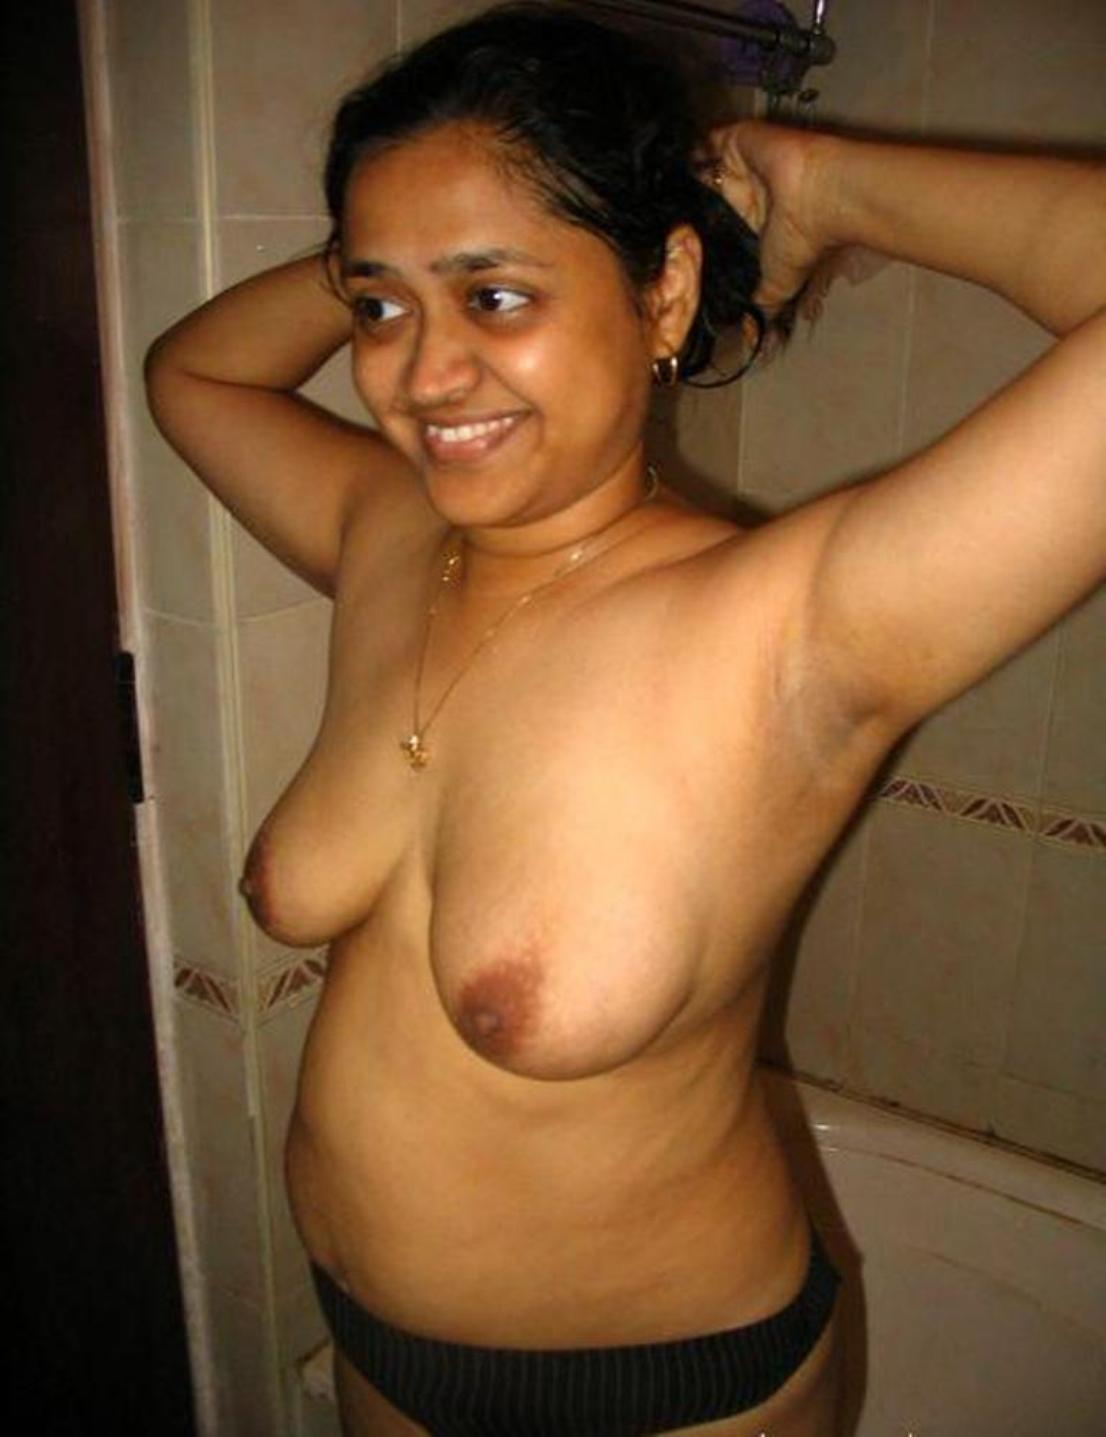 Indian Desi Aunty And Bhabhi Nude Photo Hot Bengali College Girls Nude -6580